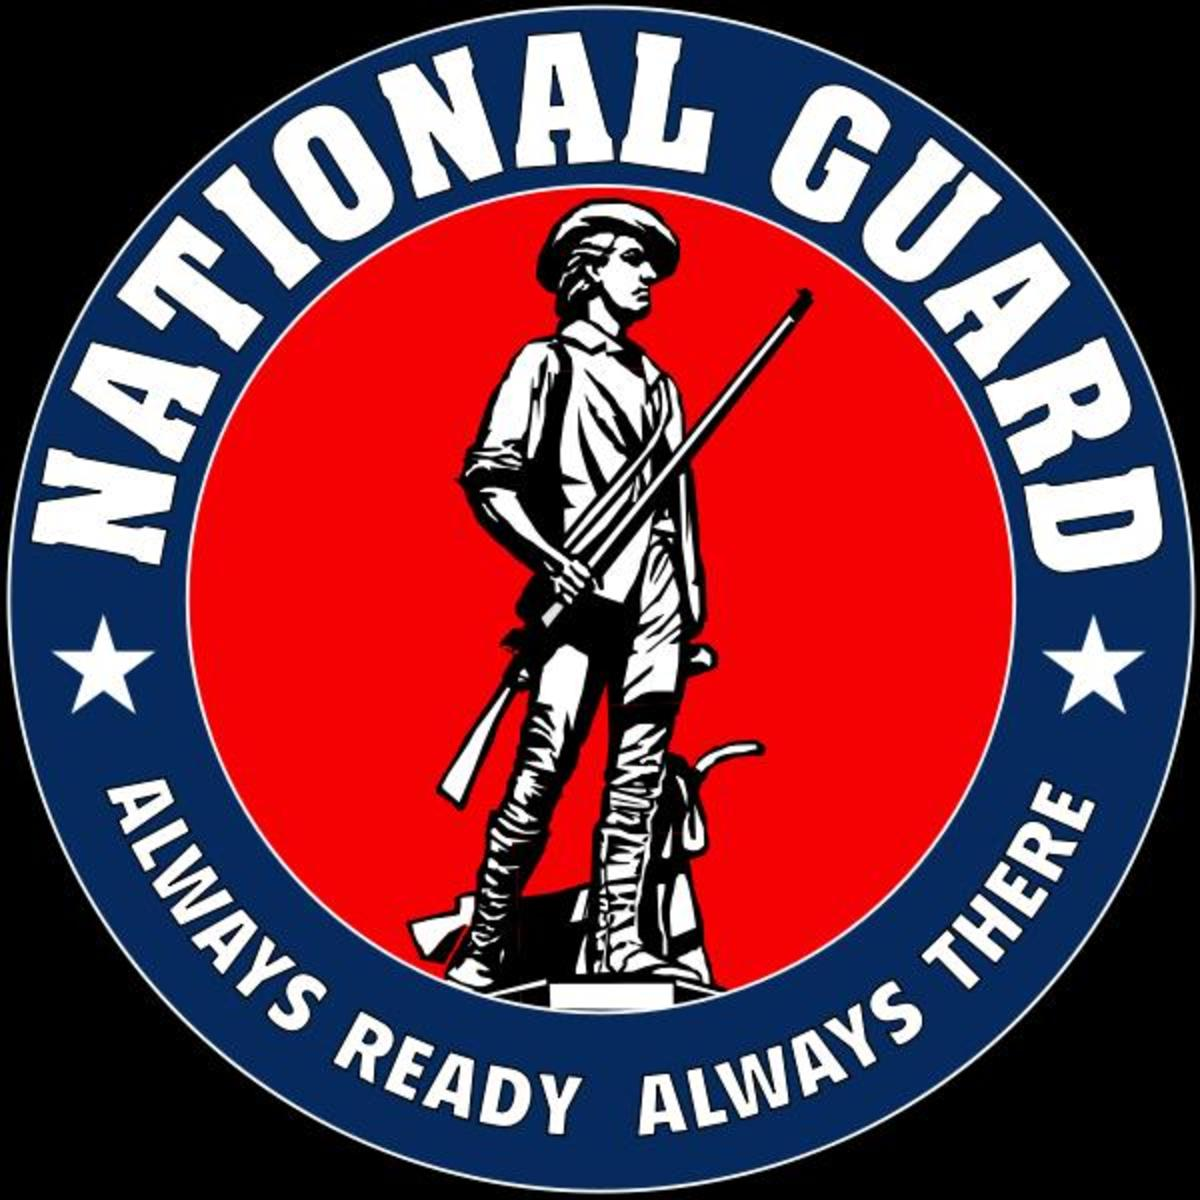 Founding of the National Guard